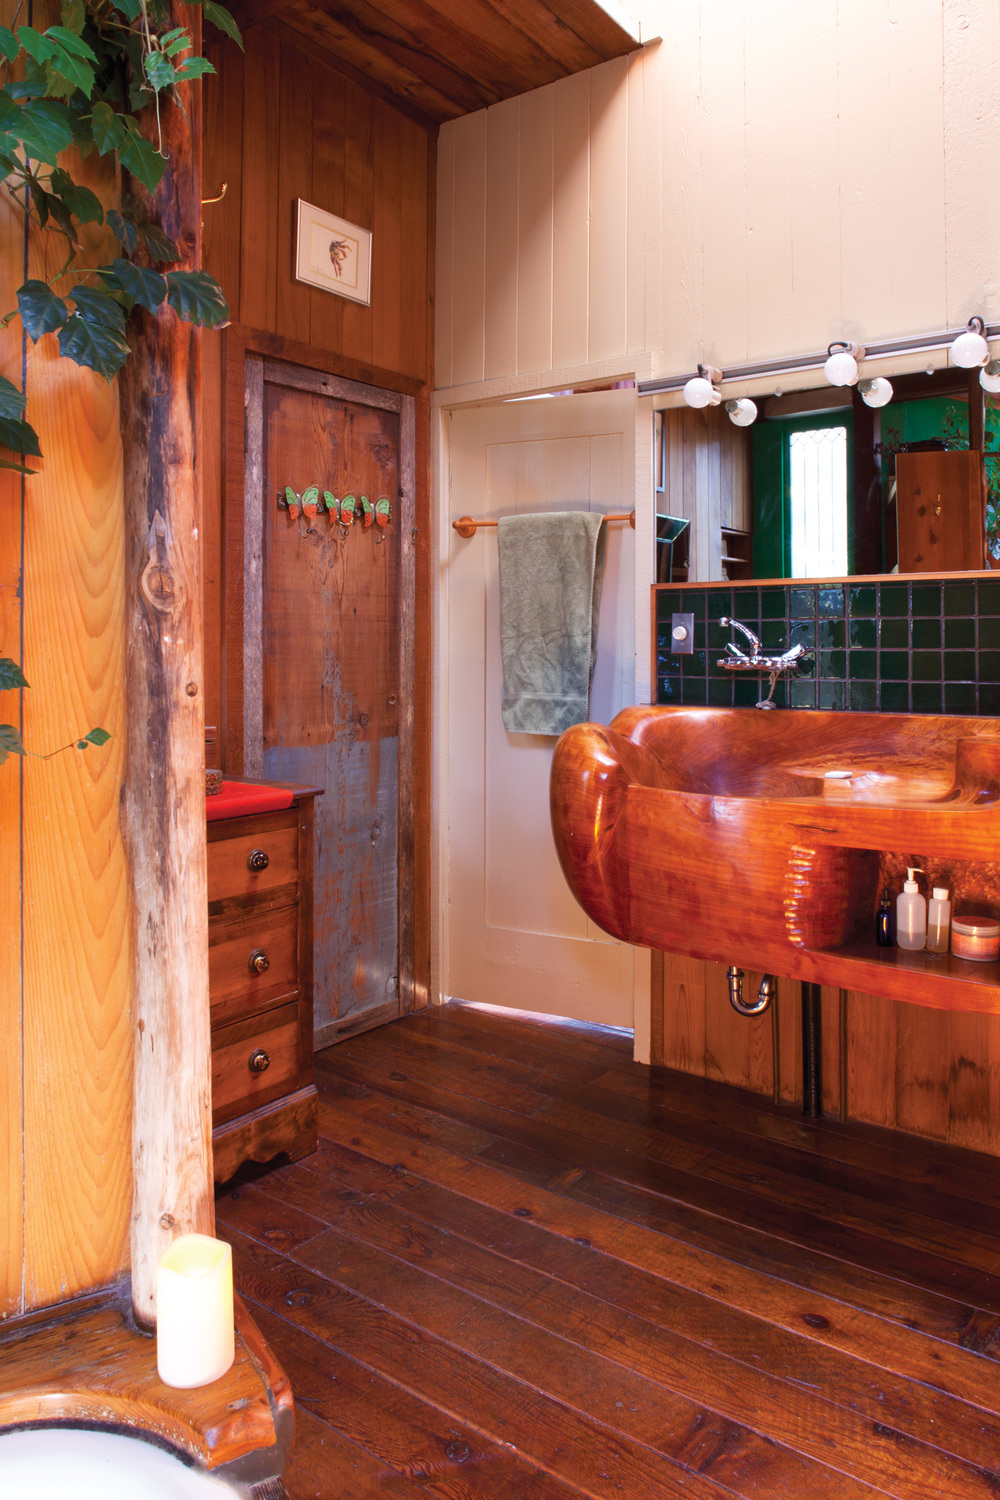 In the second-floor bath, more architectural salvage and a carved wood sink by sculptor J.B. Blunk remind of the house's history as an icon of first-generation environmental architecture.